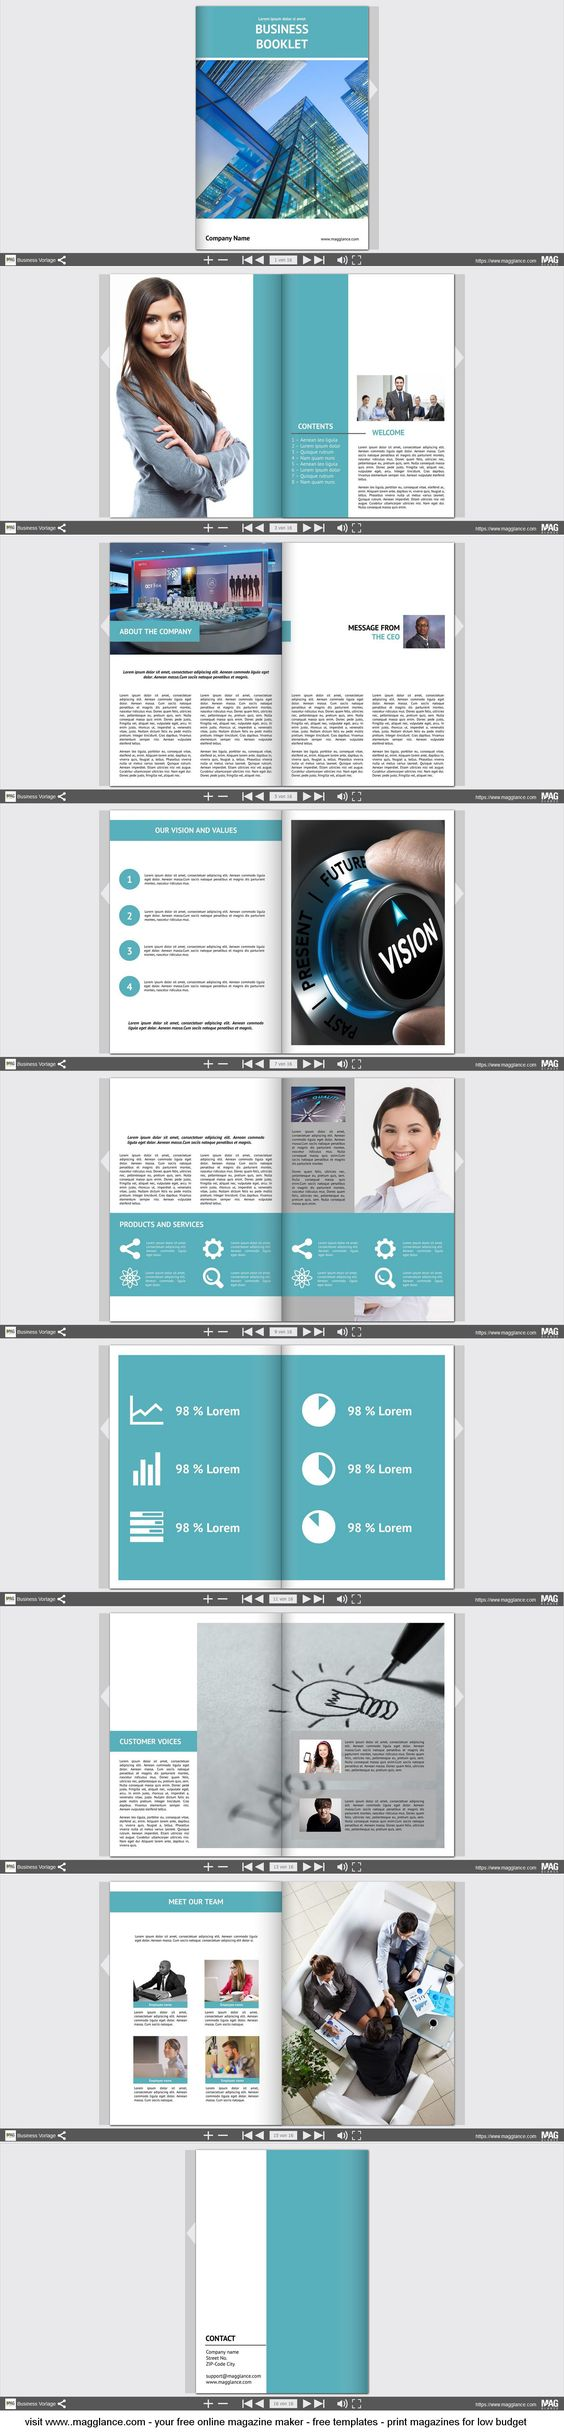 Lovely 1 Page Resume Format Free Download Thin 100 Free Resume Builder And Download Clean 100 Free Resume Builder Online 1099 Contract Template Young 15 Year Old Resume Soft2 Circle Template Crea Brochure Aziendale Gratis Online E Stampa A Un Prezzo ..